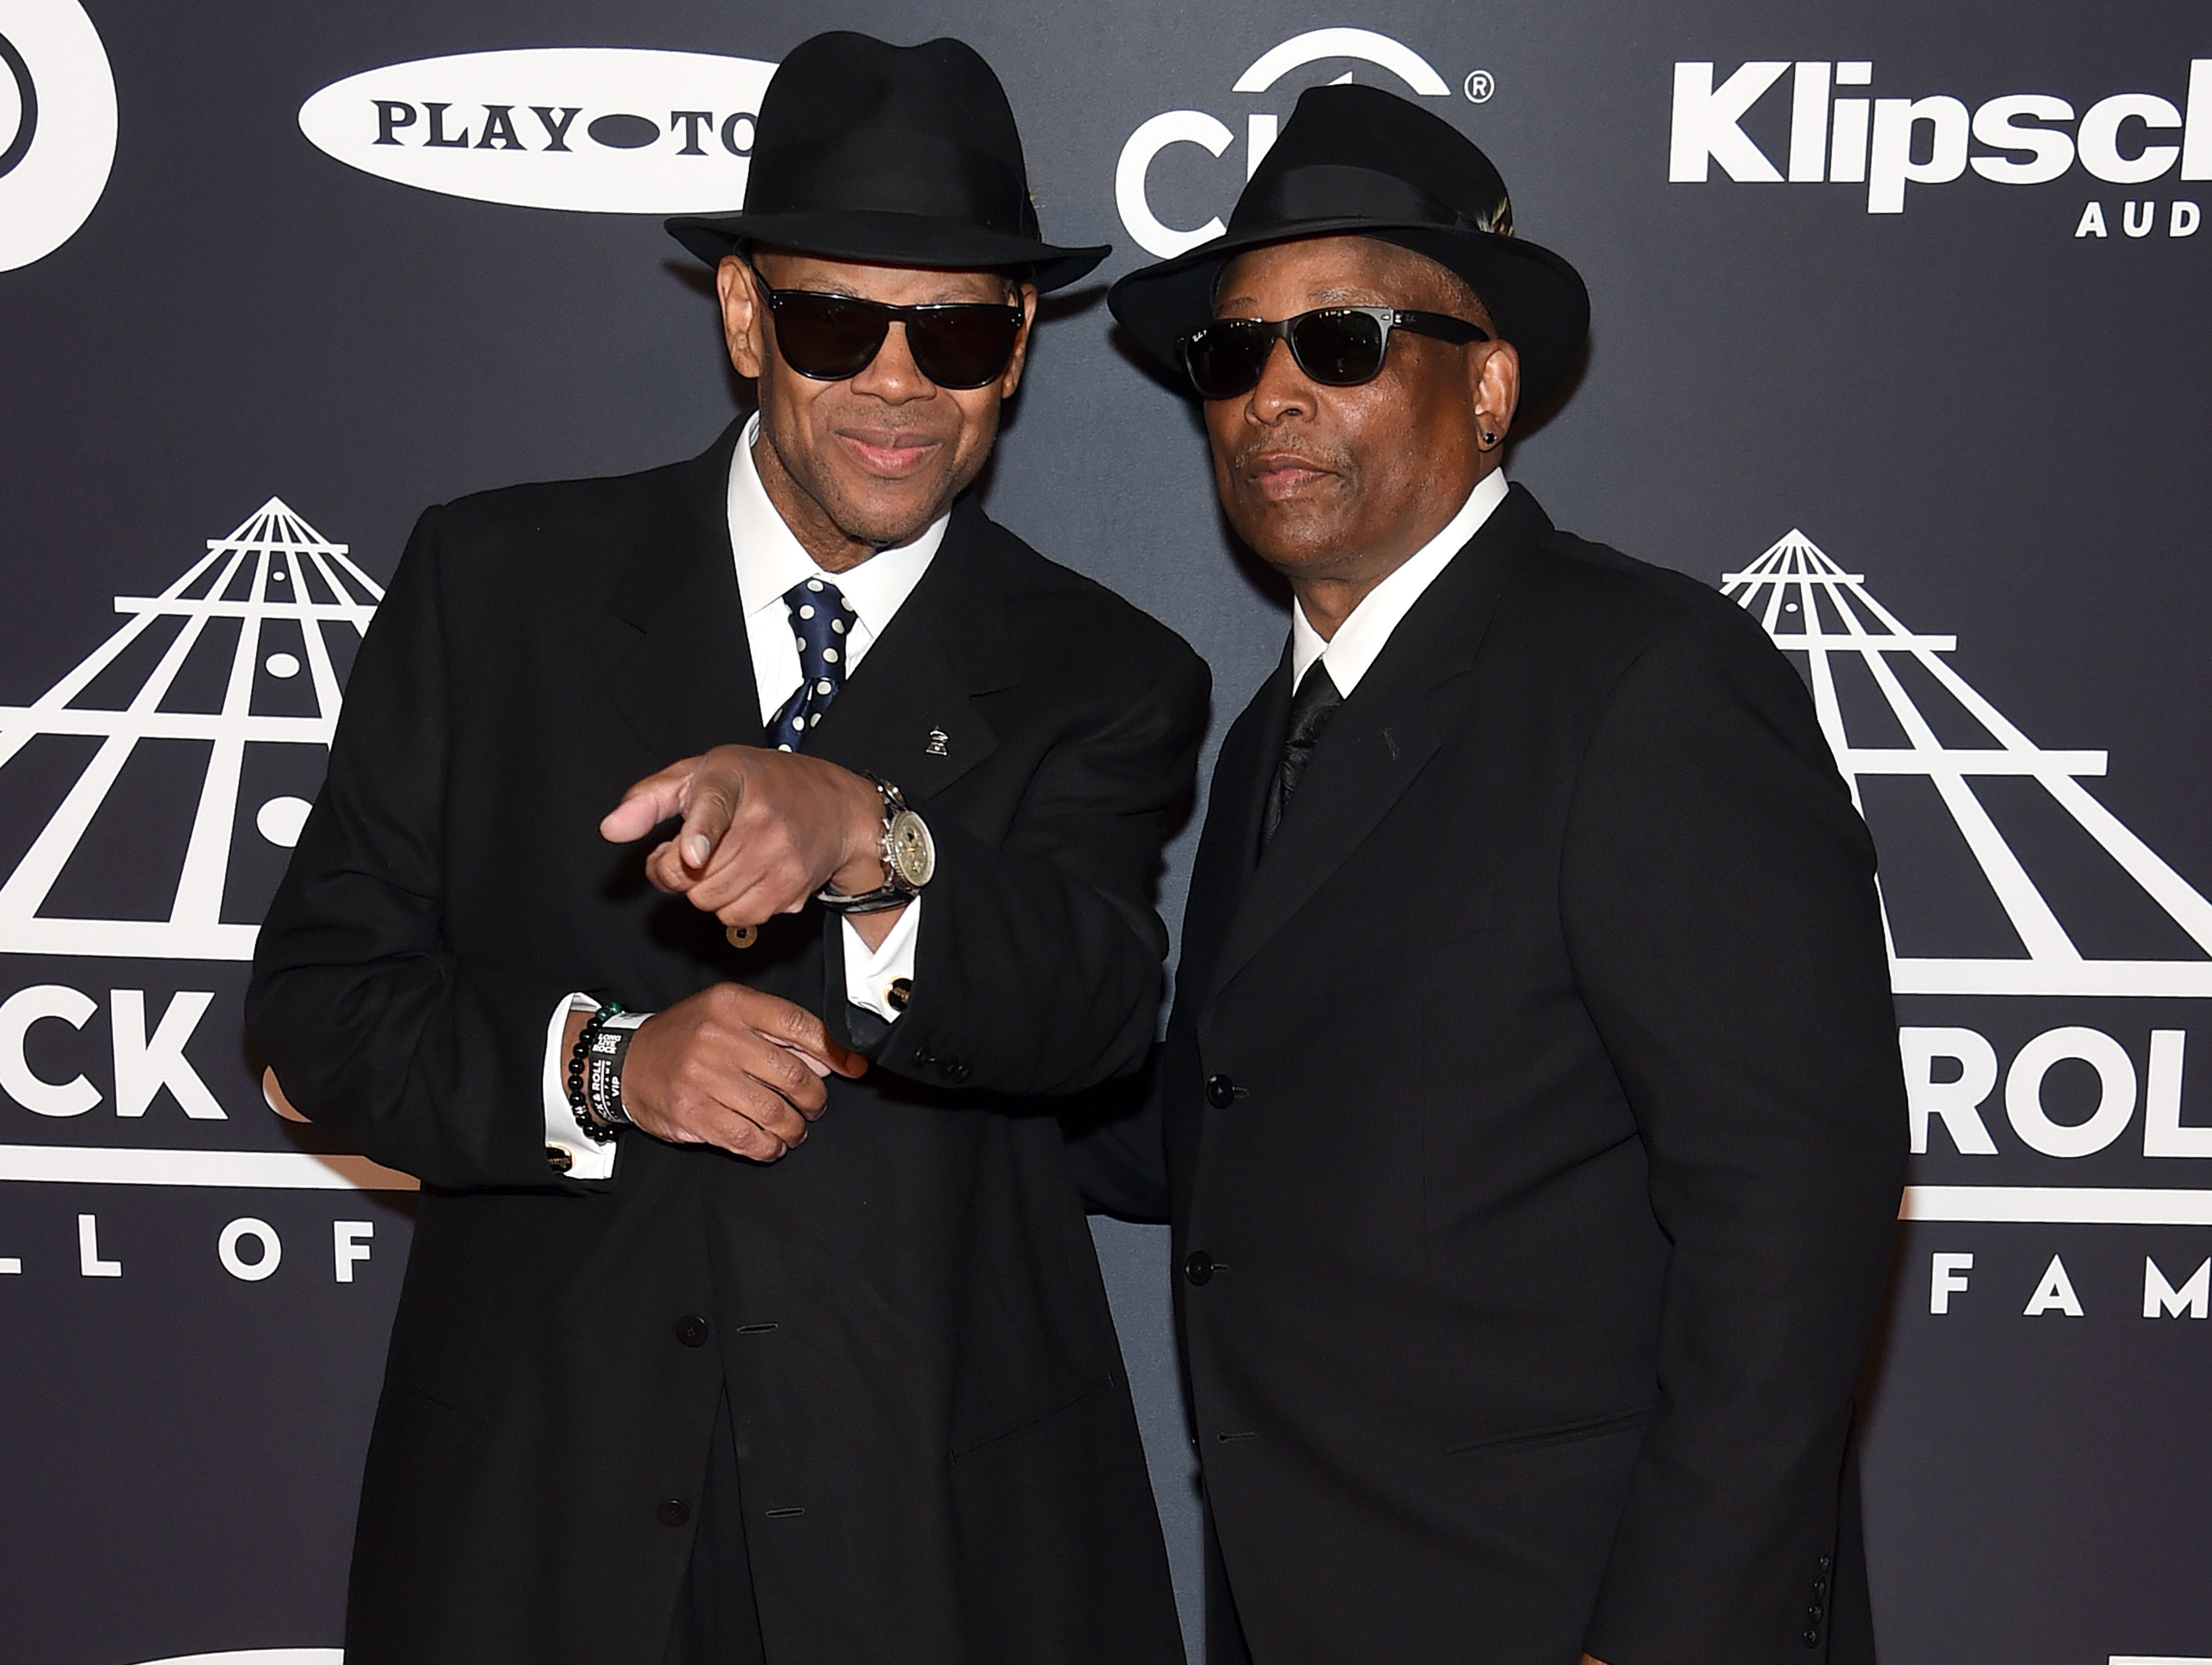 NEW YORK, NEW YORK - MARCH 29: (L-R) Jimmy Jam and Terry Lewis attend the 2019 Rock & Roll Hall Of Fame Induction Ceremony at Barclays Center on March 29, 2019 in New York City. (Photo by Jamie McCarthy/WireImage) ORG XMIT: 775320639 ORIG FILE ID: 1139160312